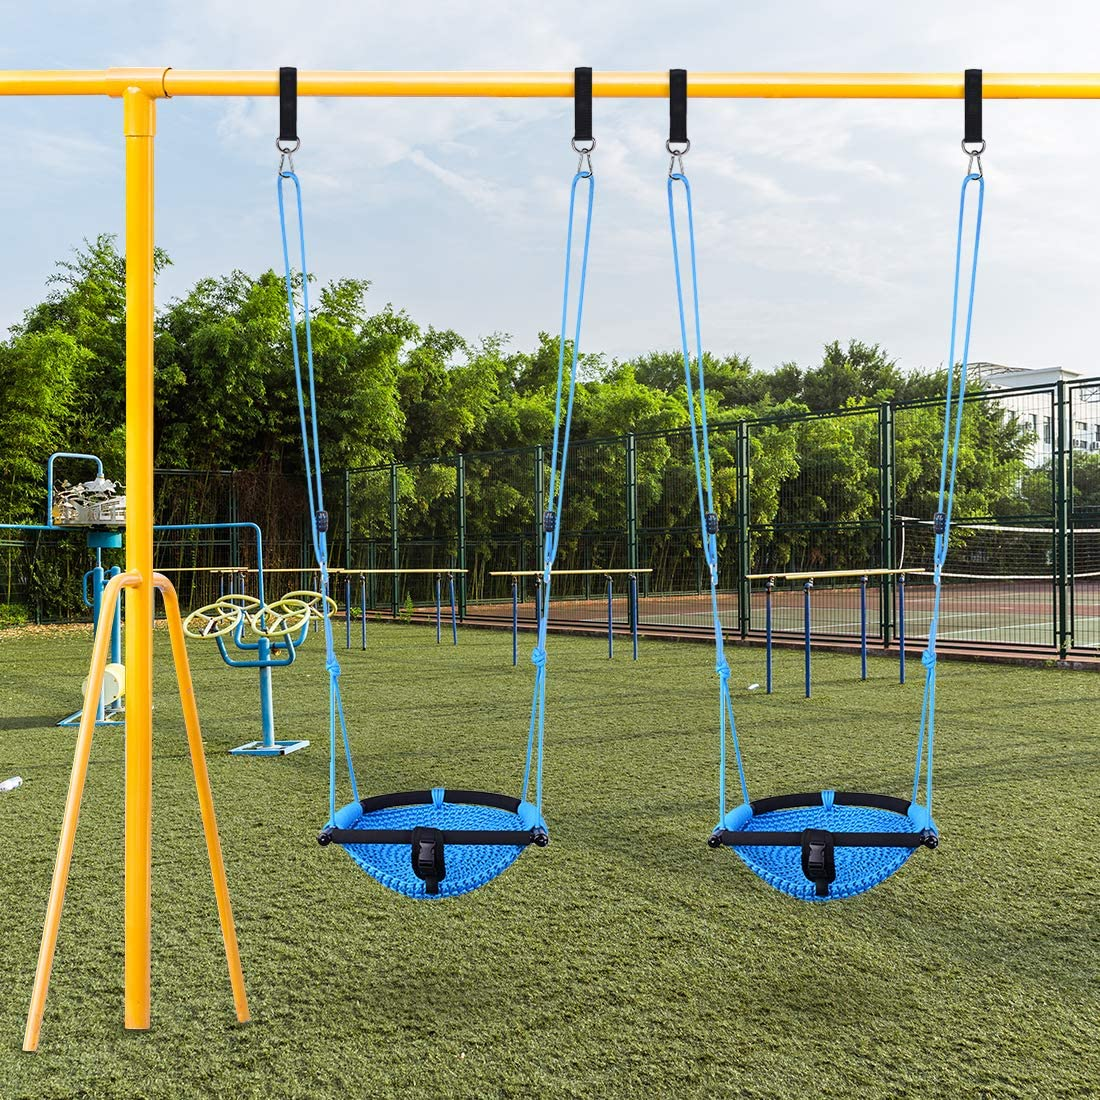 Insanely Fun Outdoor Swings For Kids They Will Really Love Playing With This Summer